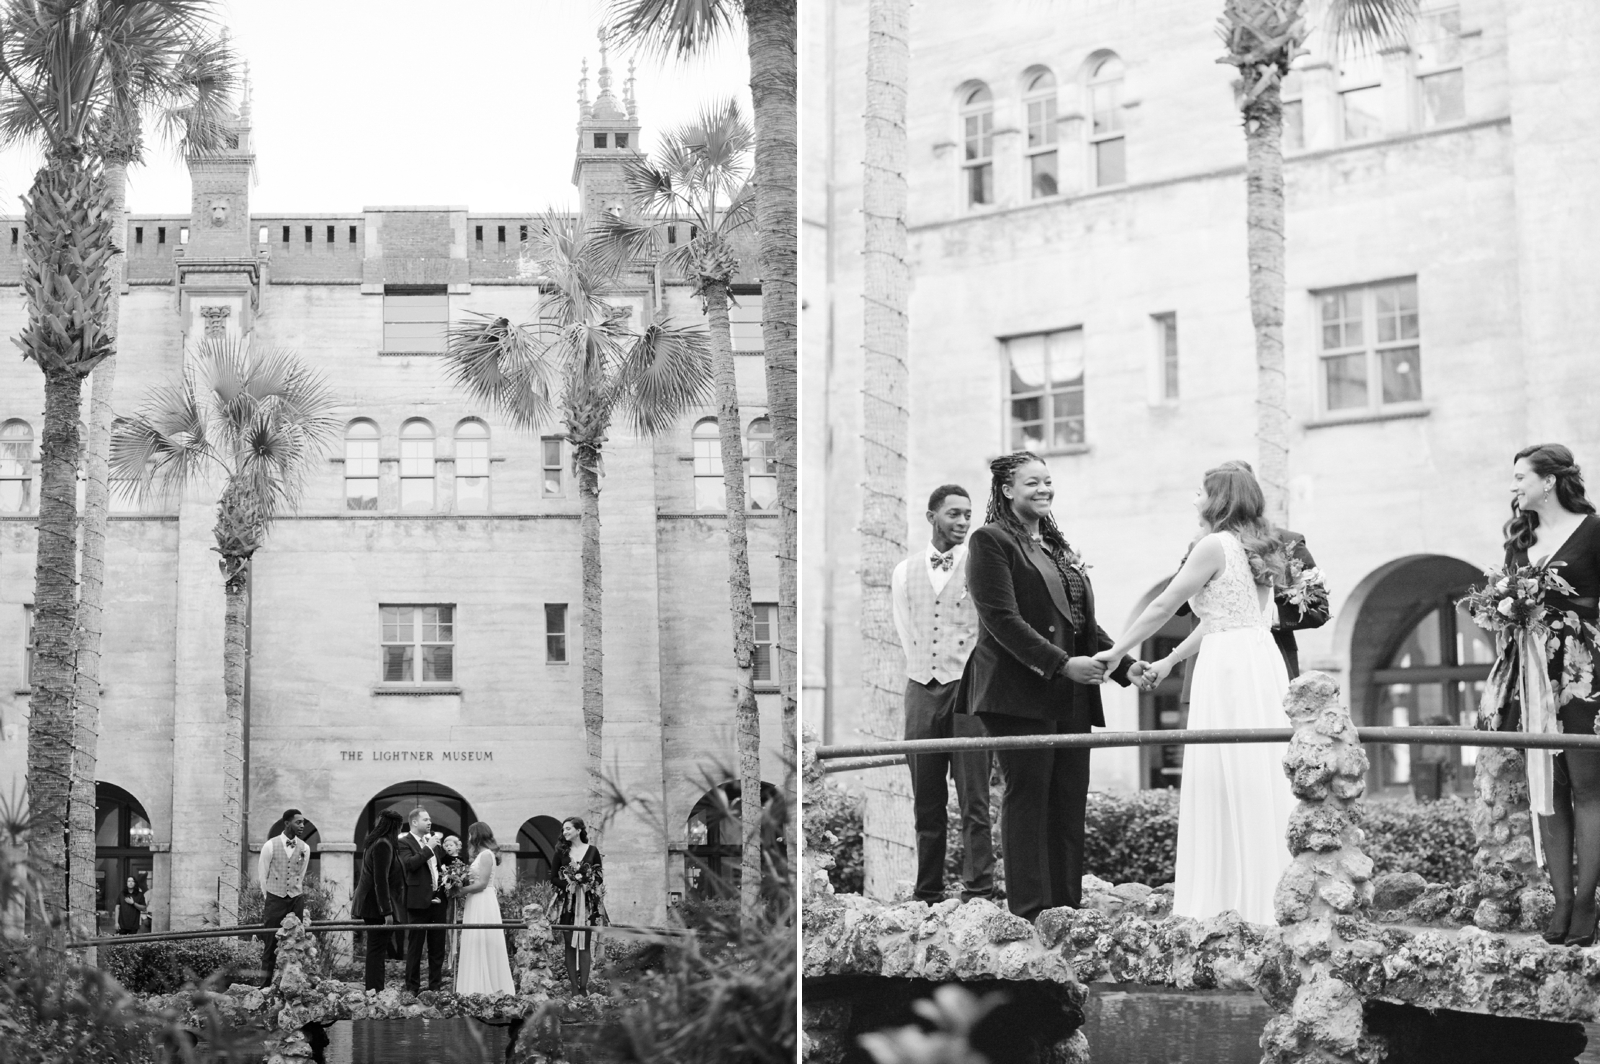 lightner_museum_st_augustine_wedding_photographer_shannon_griffin_0014.jpg